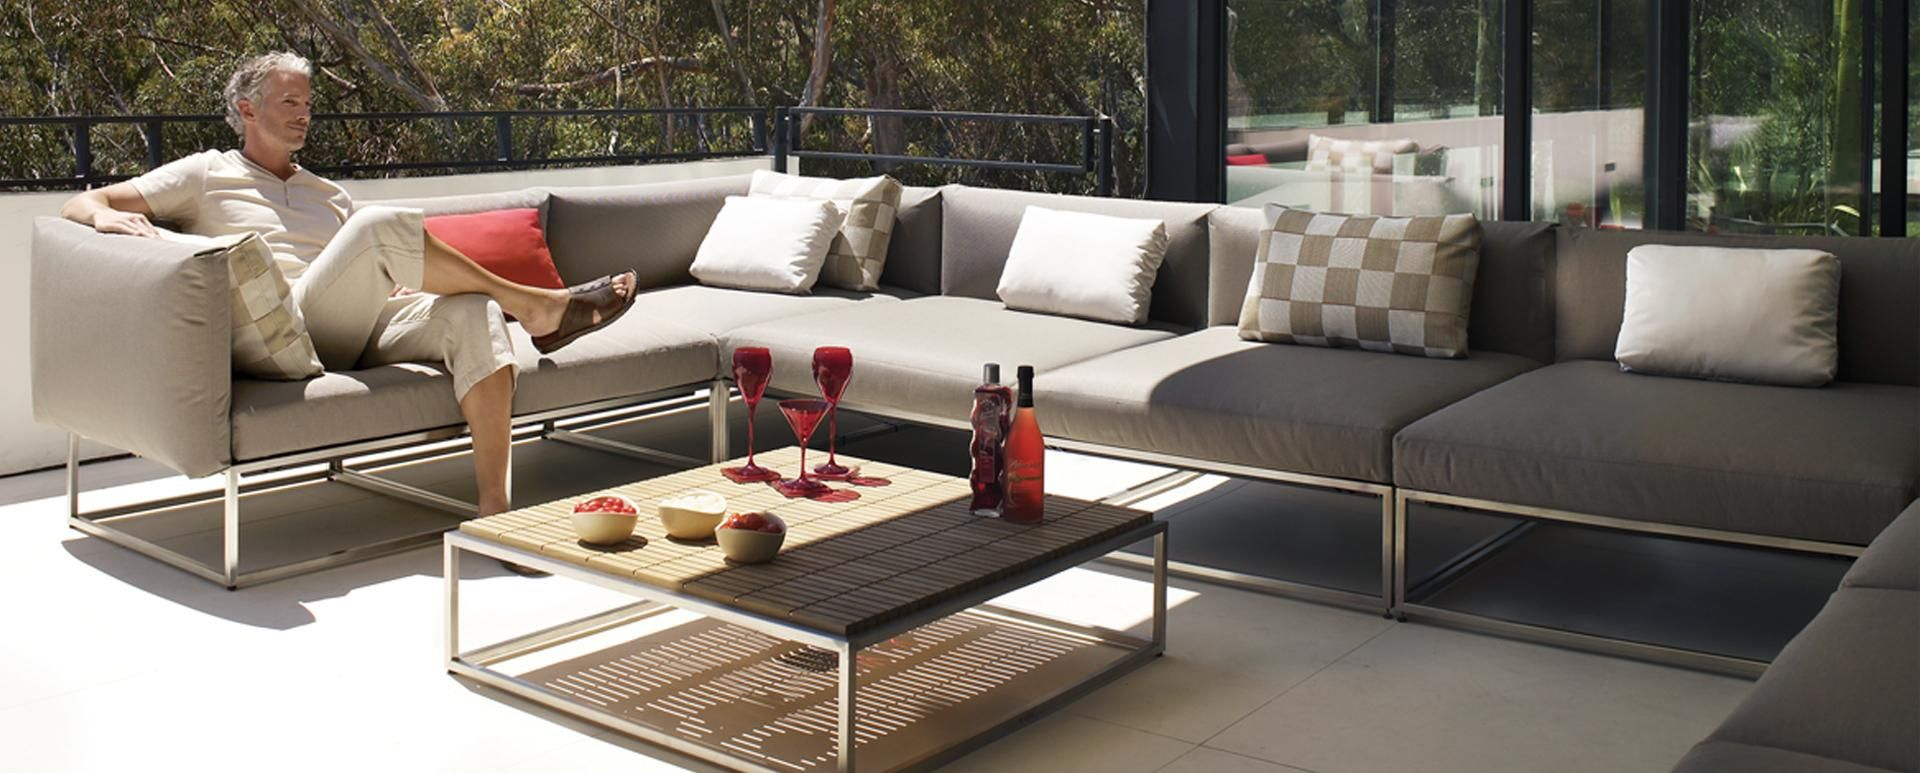 exterior furniture  gloster furniture  furniture pieces  - exterior furniture  gloster furniture · contemporary outdoor